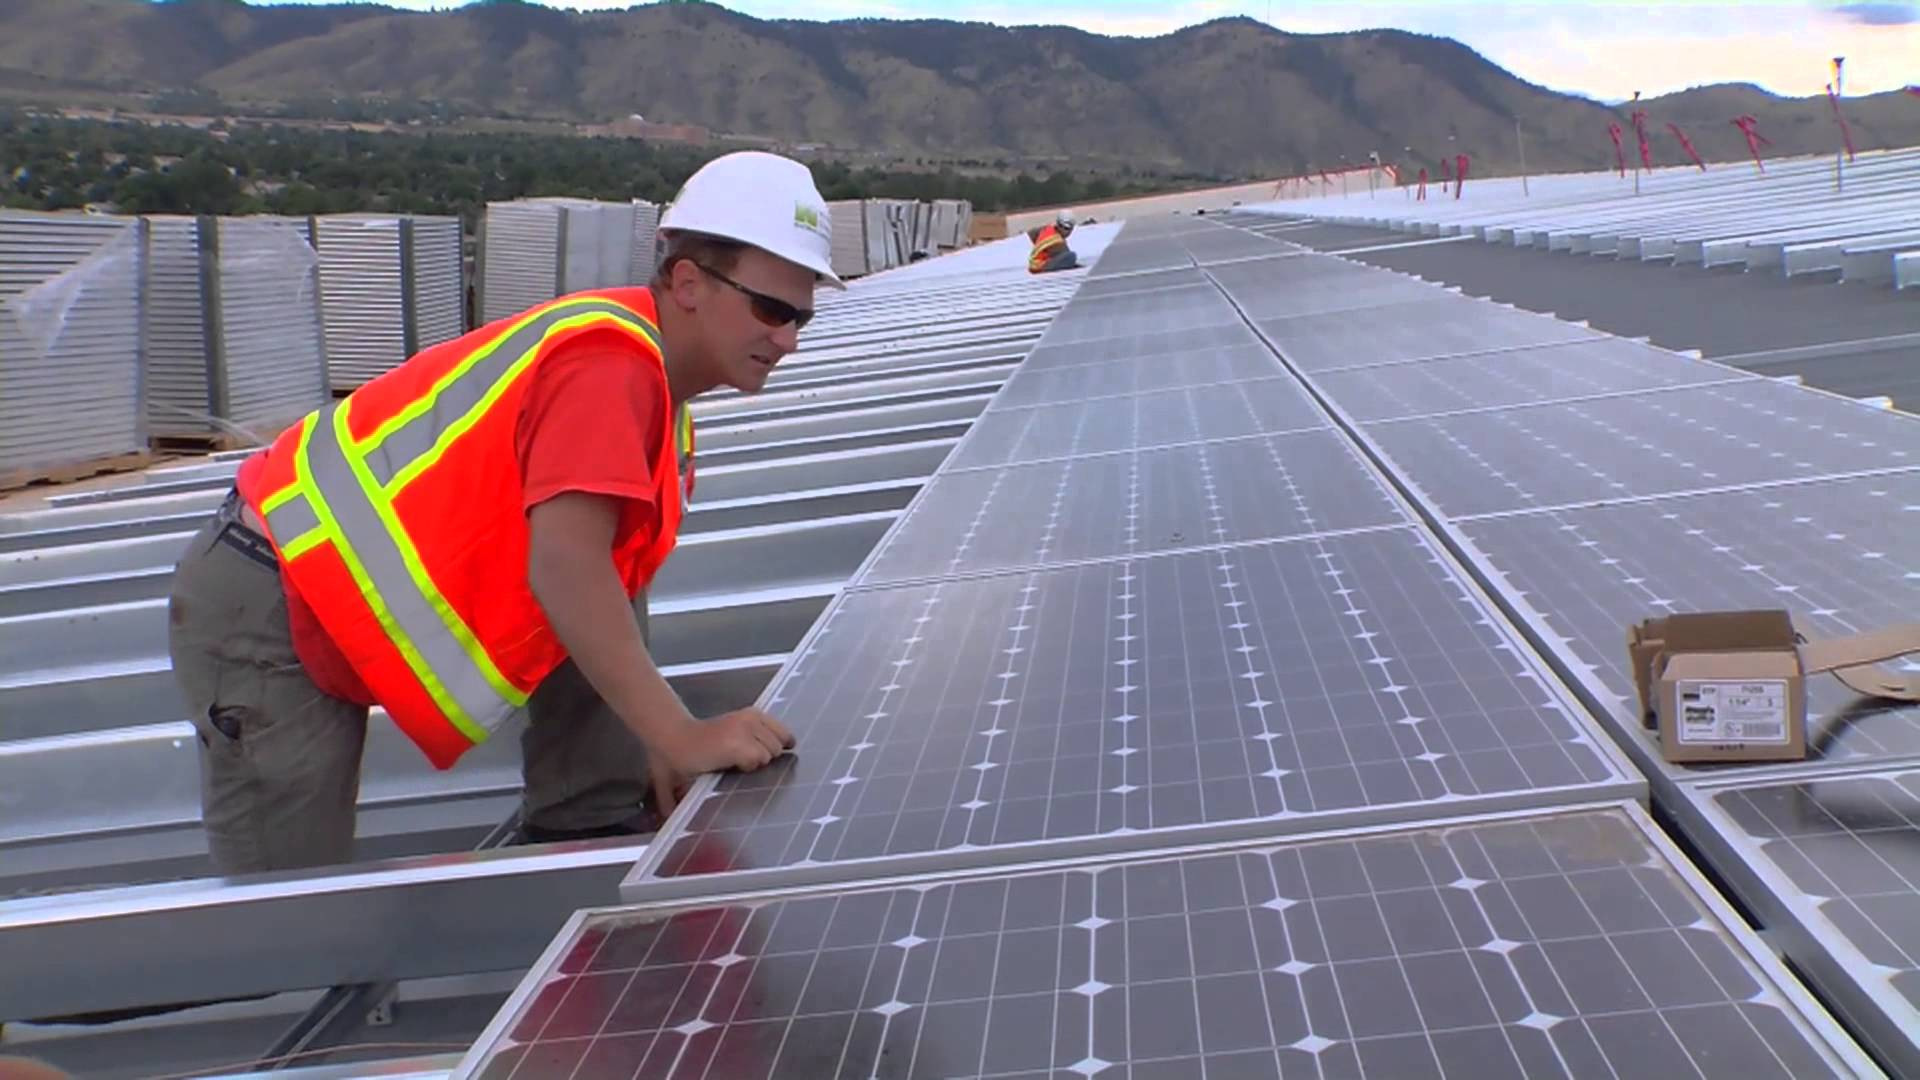 Stanford researchers discover a break-through to create low-cost solar cells